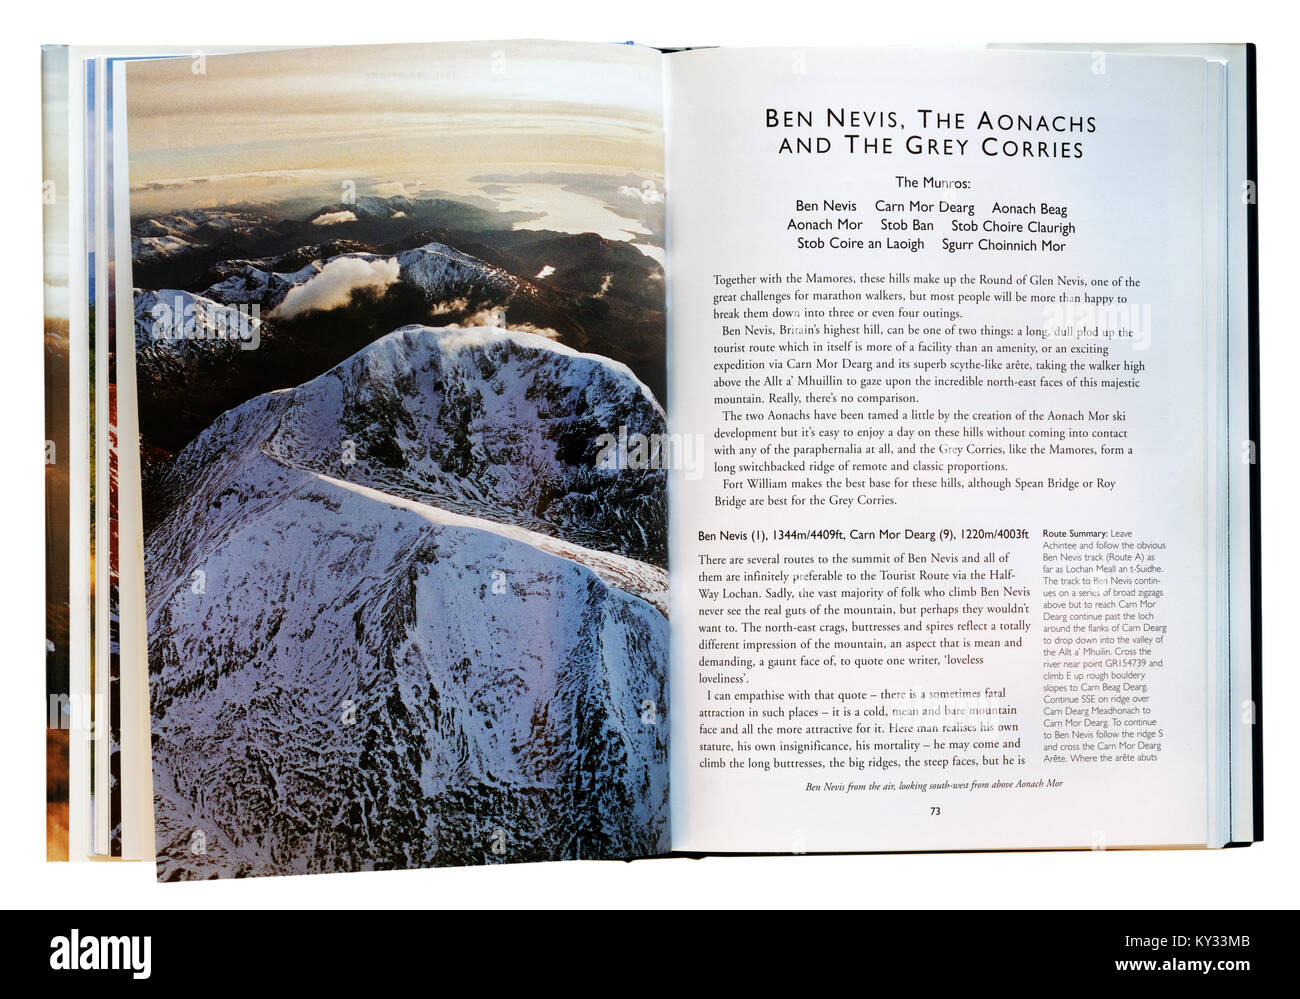 Guidebook to hillwalking Scottish Highlands, showing the page for Ben Nevis - Stock Image